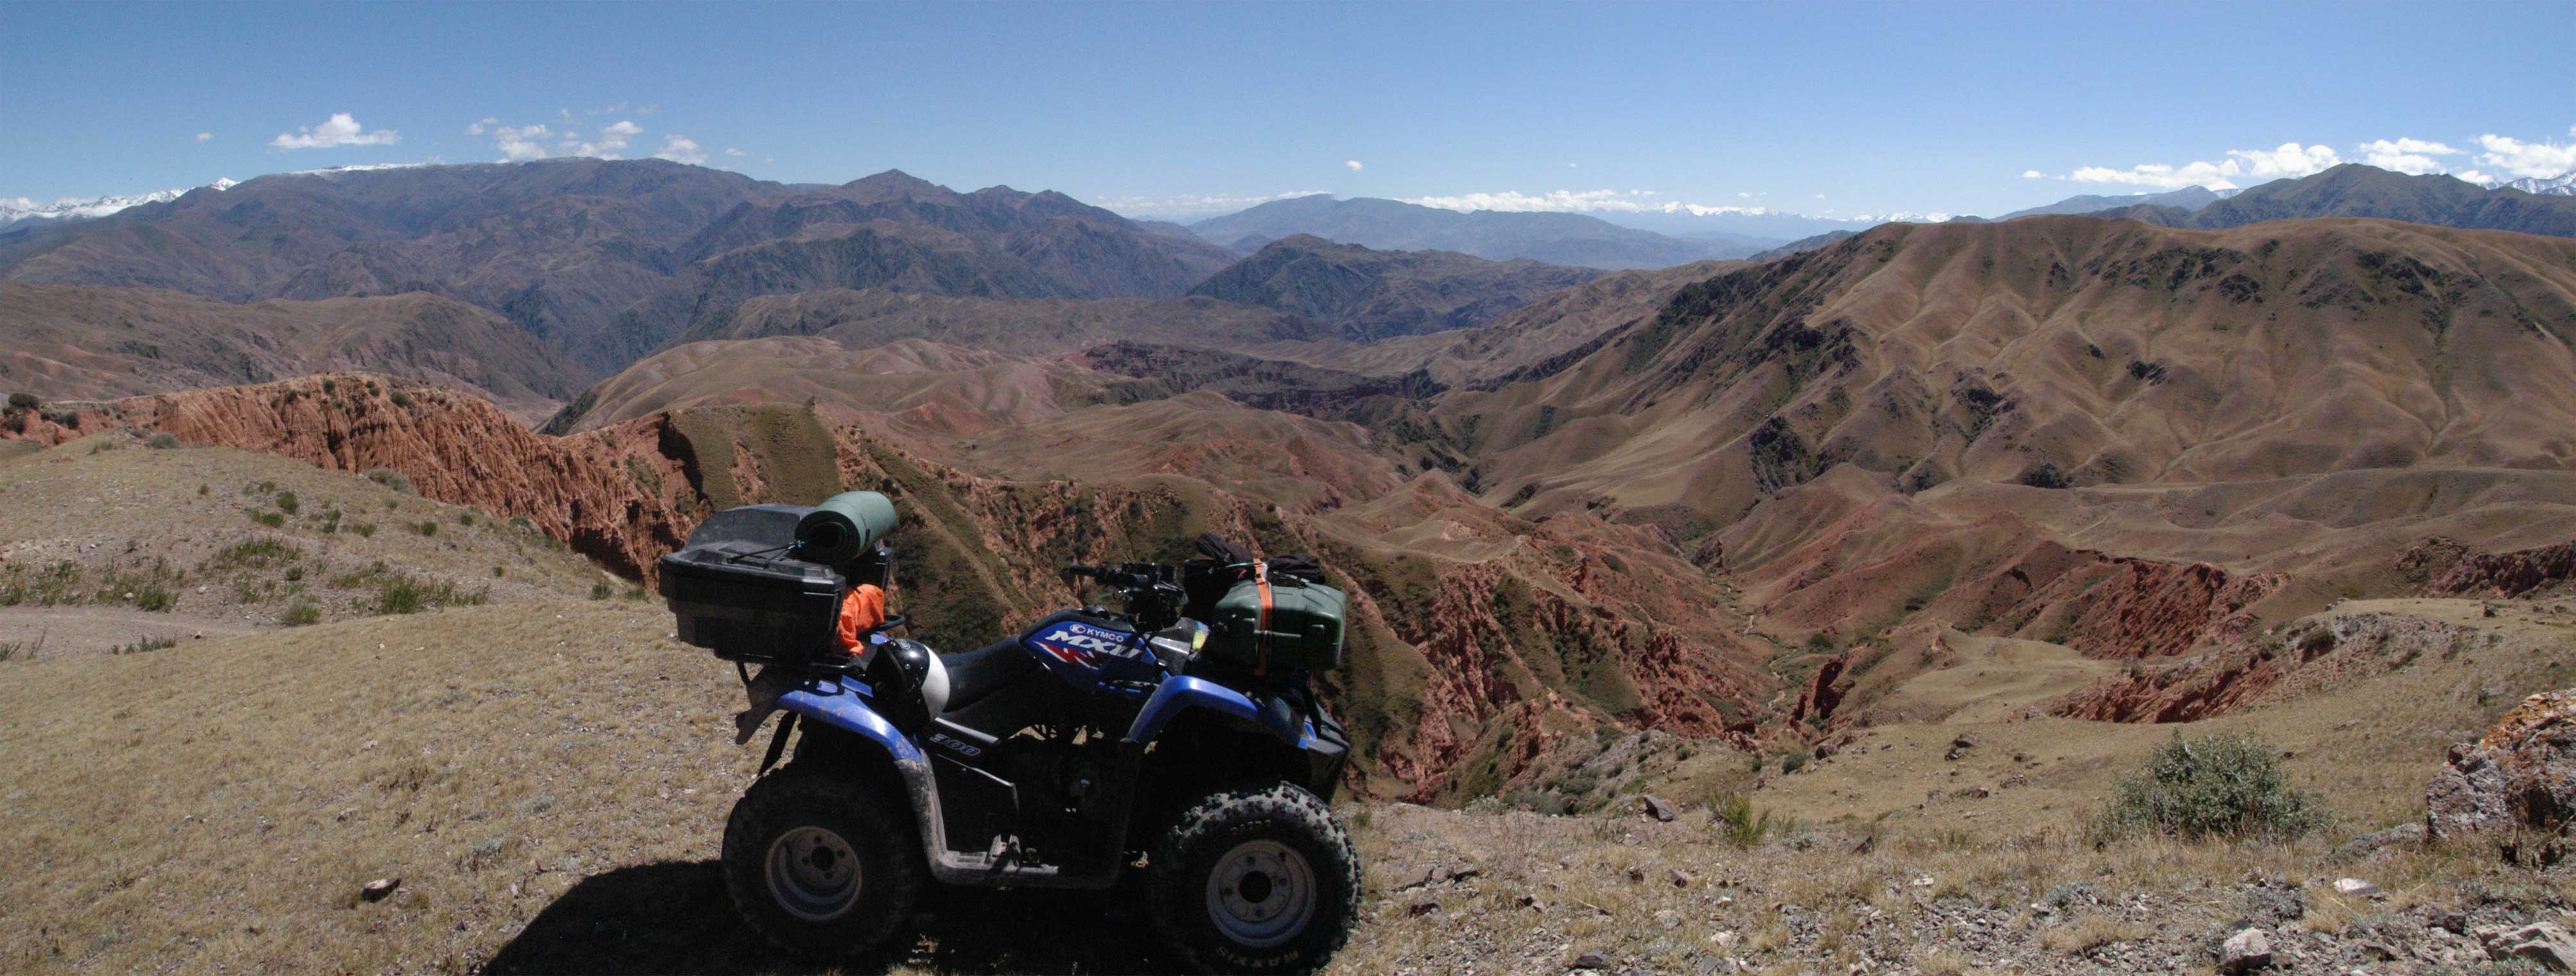 Offroad Quad Touren - Kegety Pass and to the Konortchok Canyons